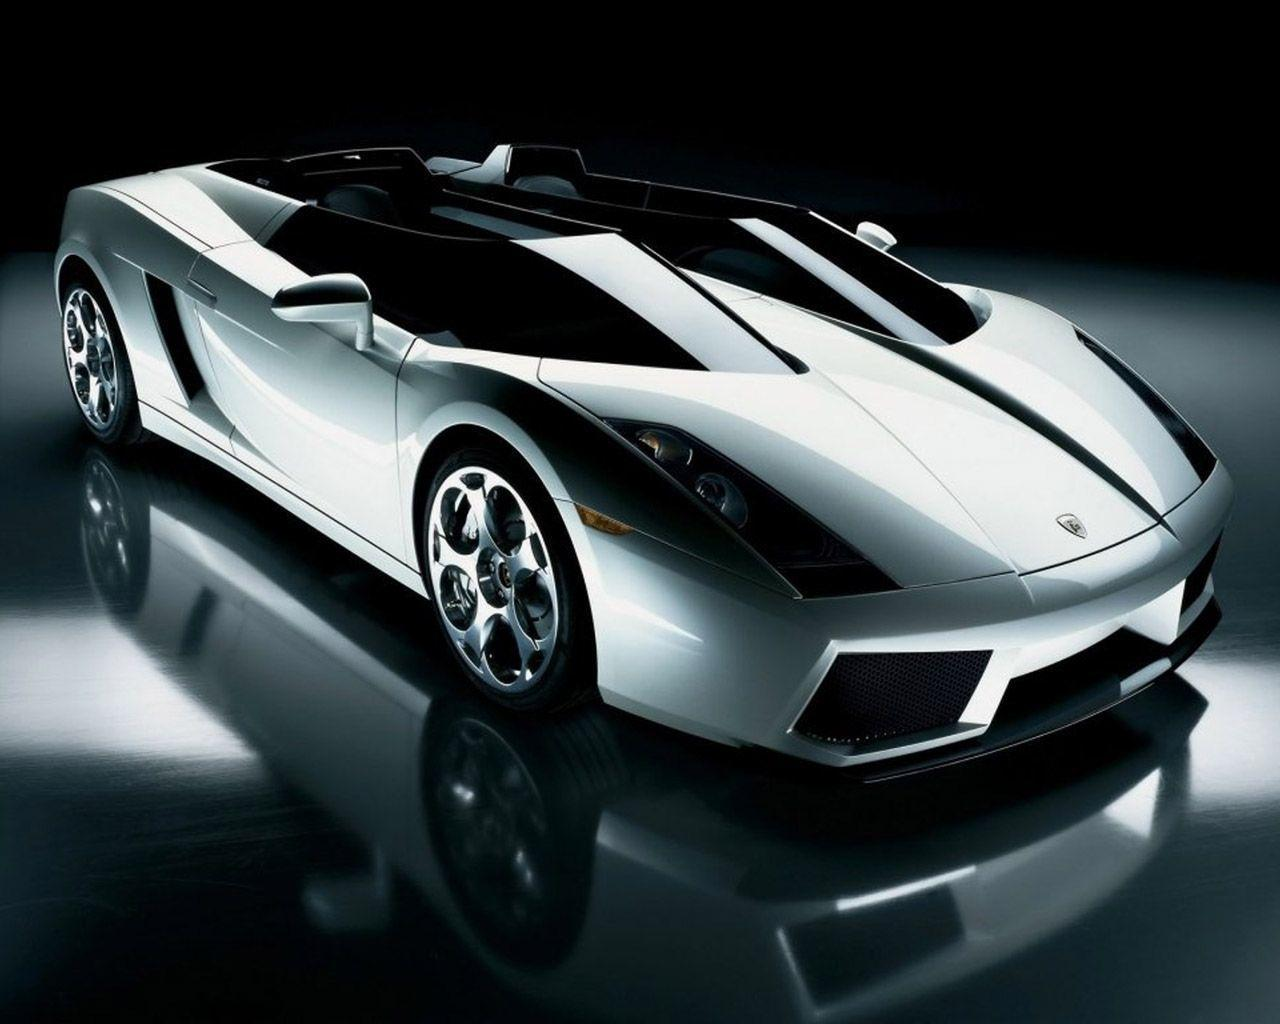 wallpapers for desktop wallpaper 3d hd cars - Cool Cars Wallpapers 3d